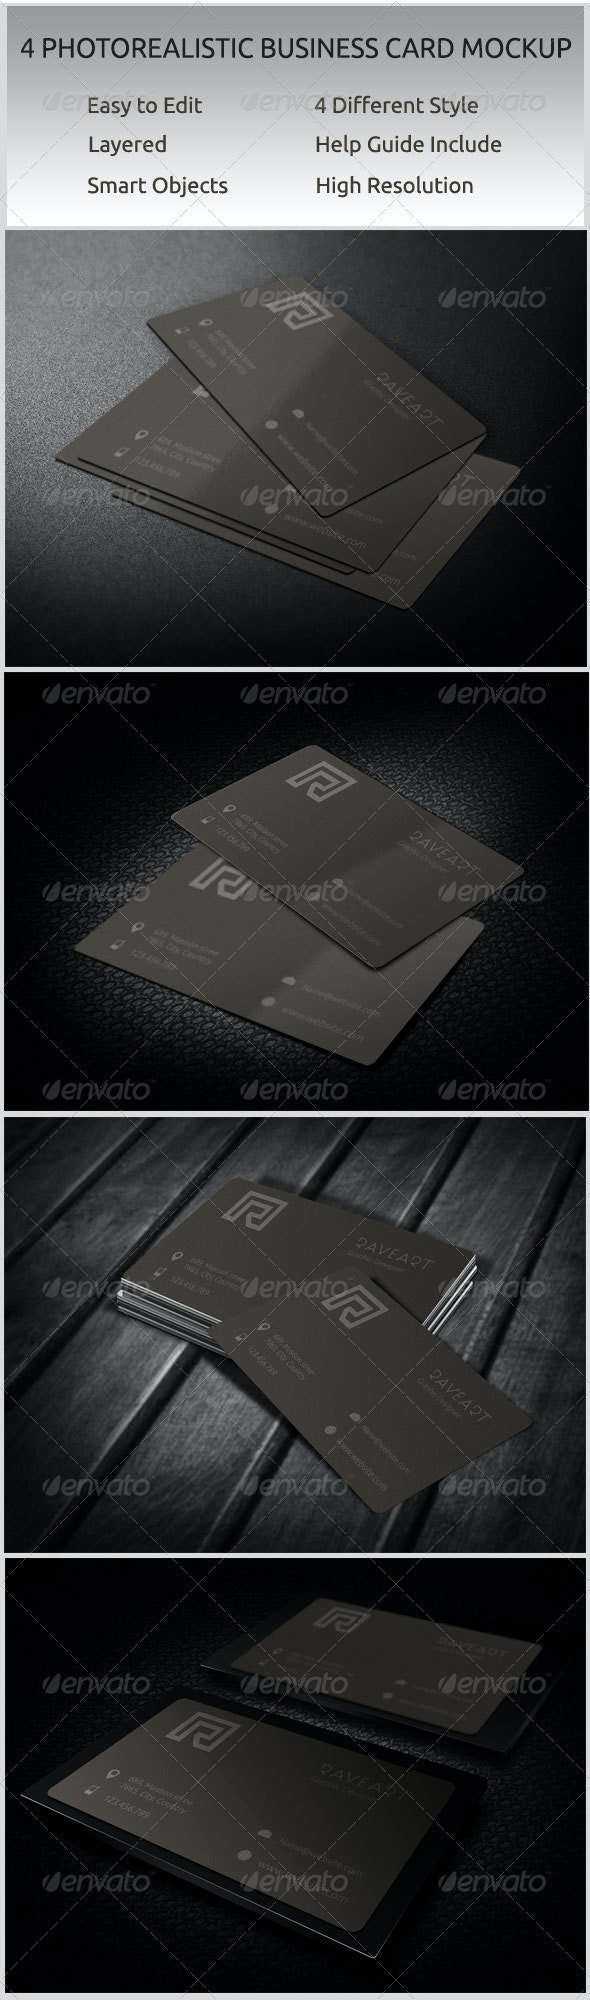 4 Photorealistic Business Card Mockup - Print Product Mock-Ups